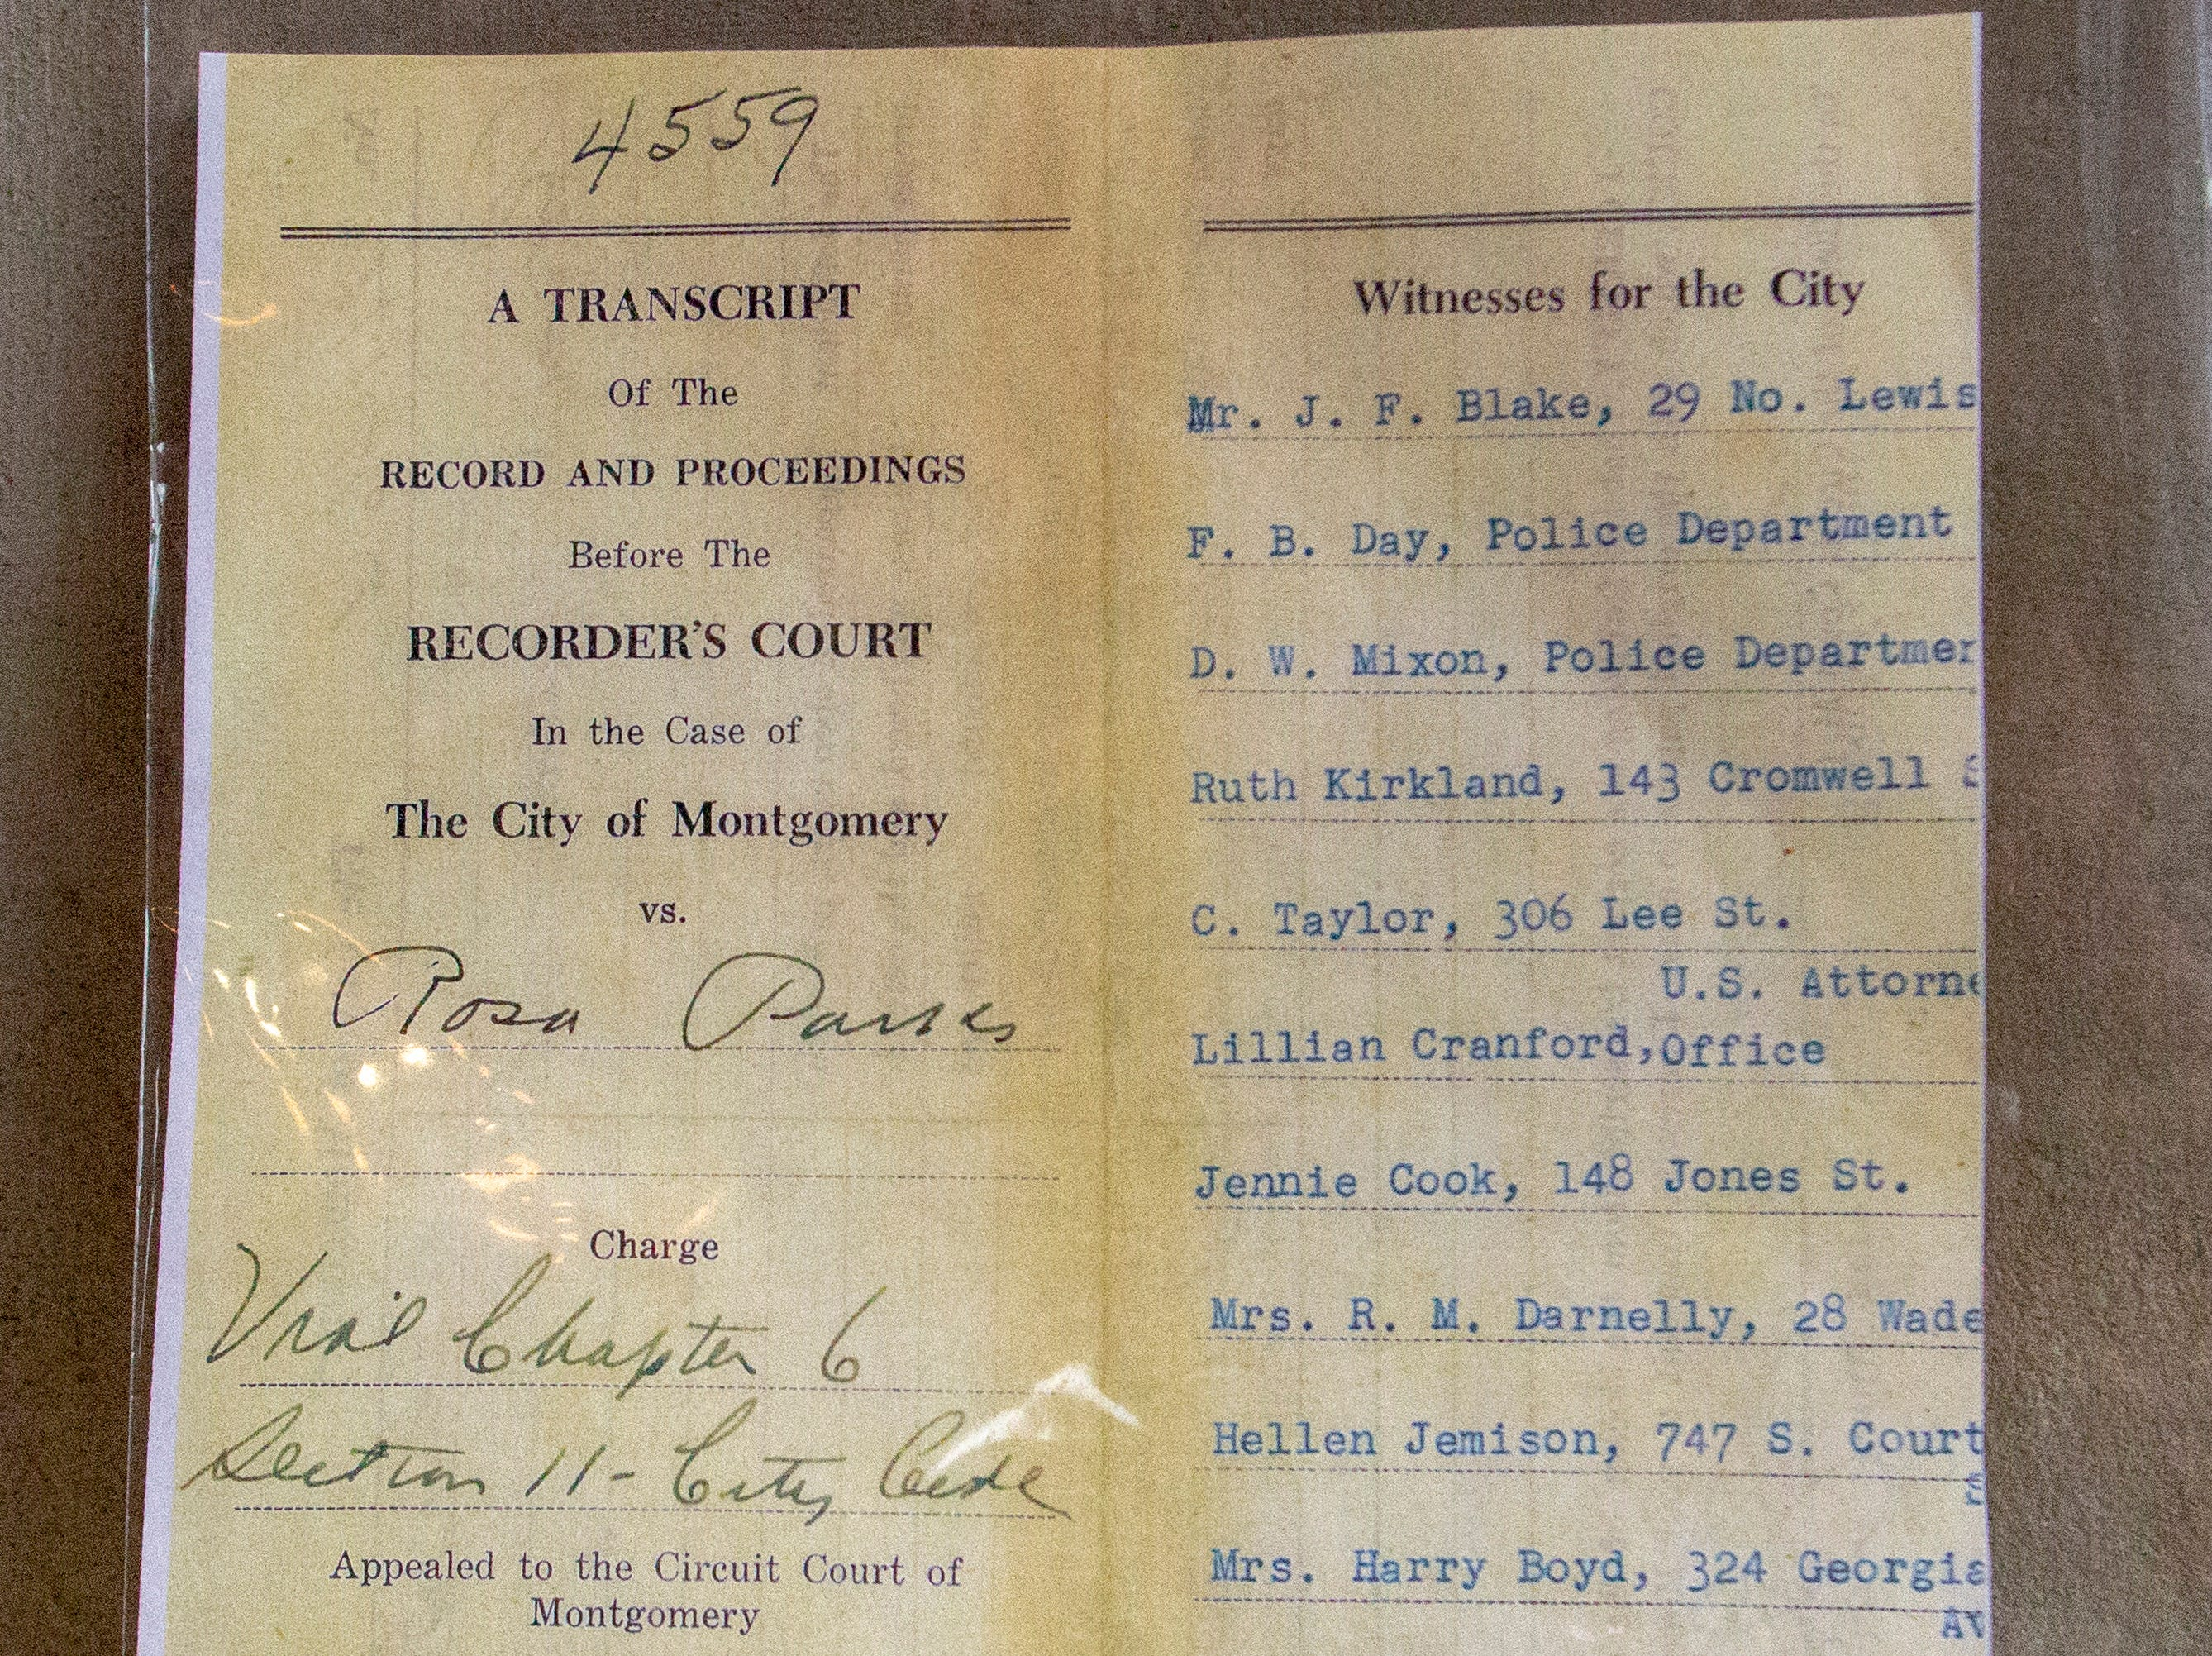 Rosa Parks' arrest record from 63 years ago when her act of civil disobedience helps spark the desegregation of Montgomery city busses as well as the larger civil rights movement.